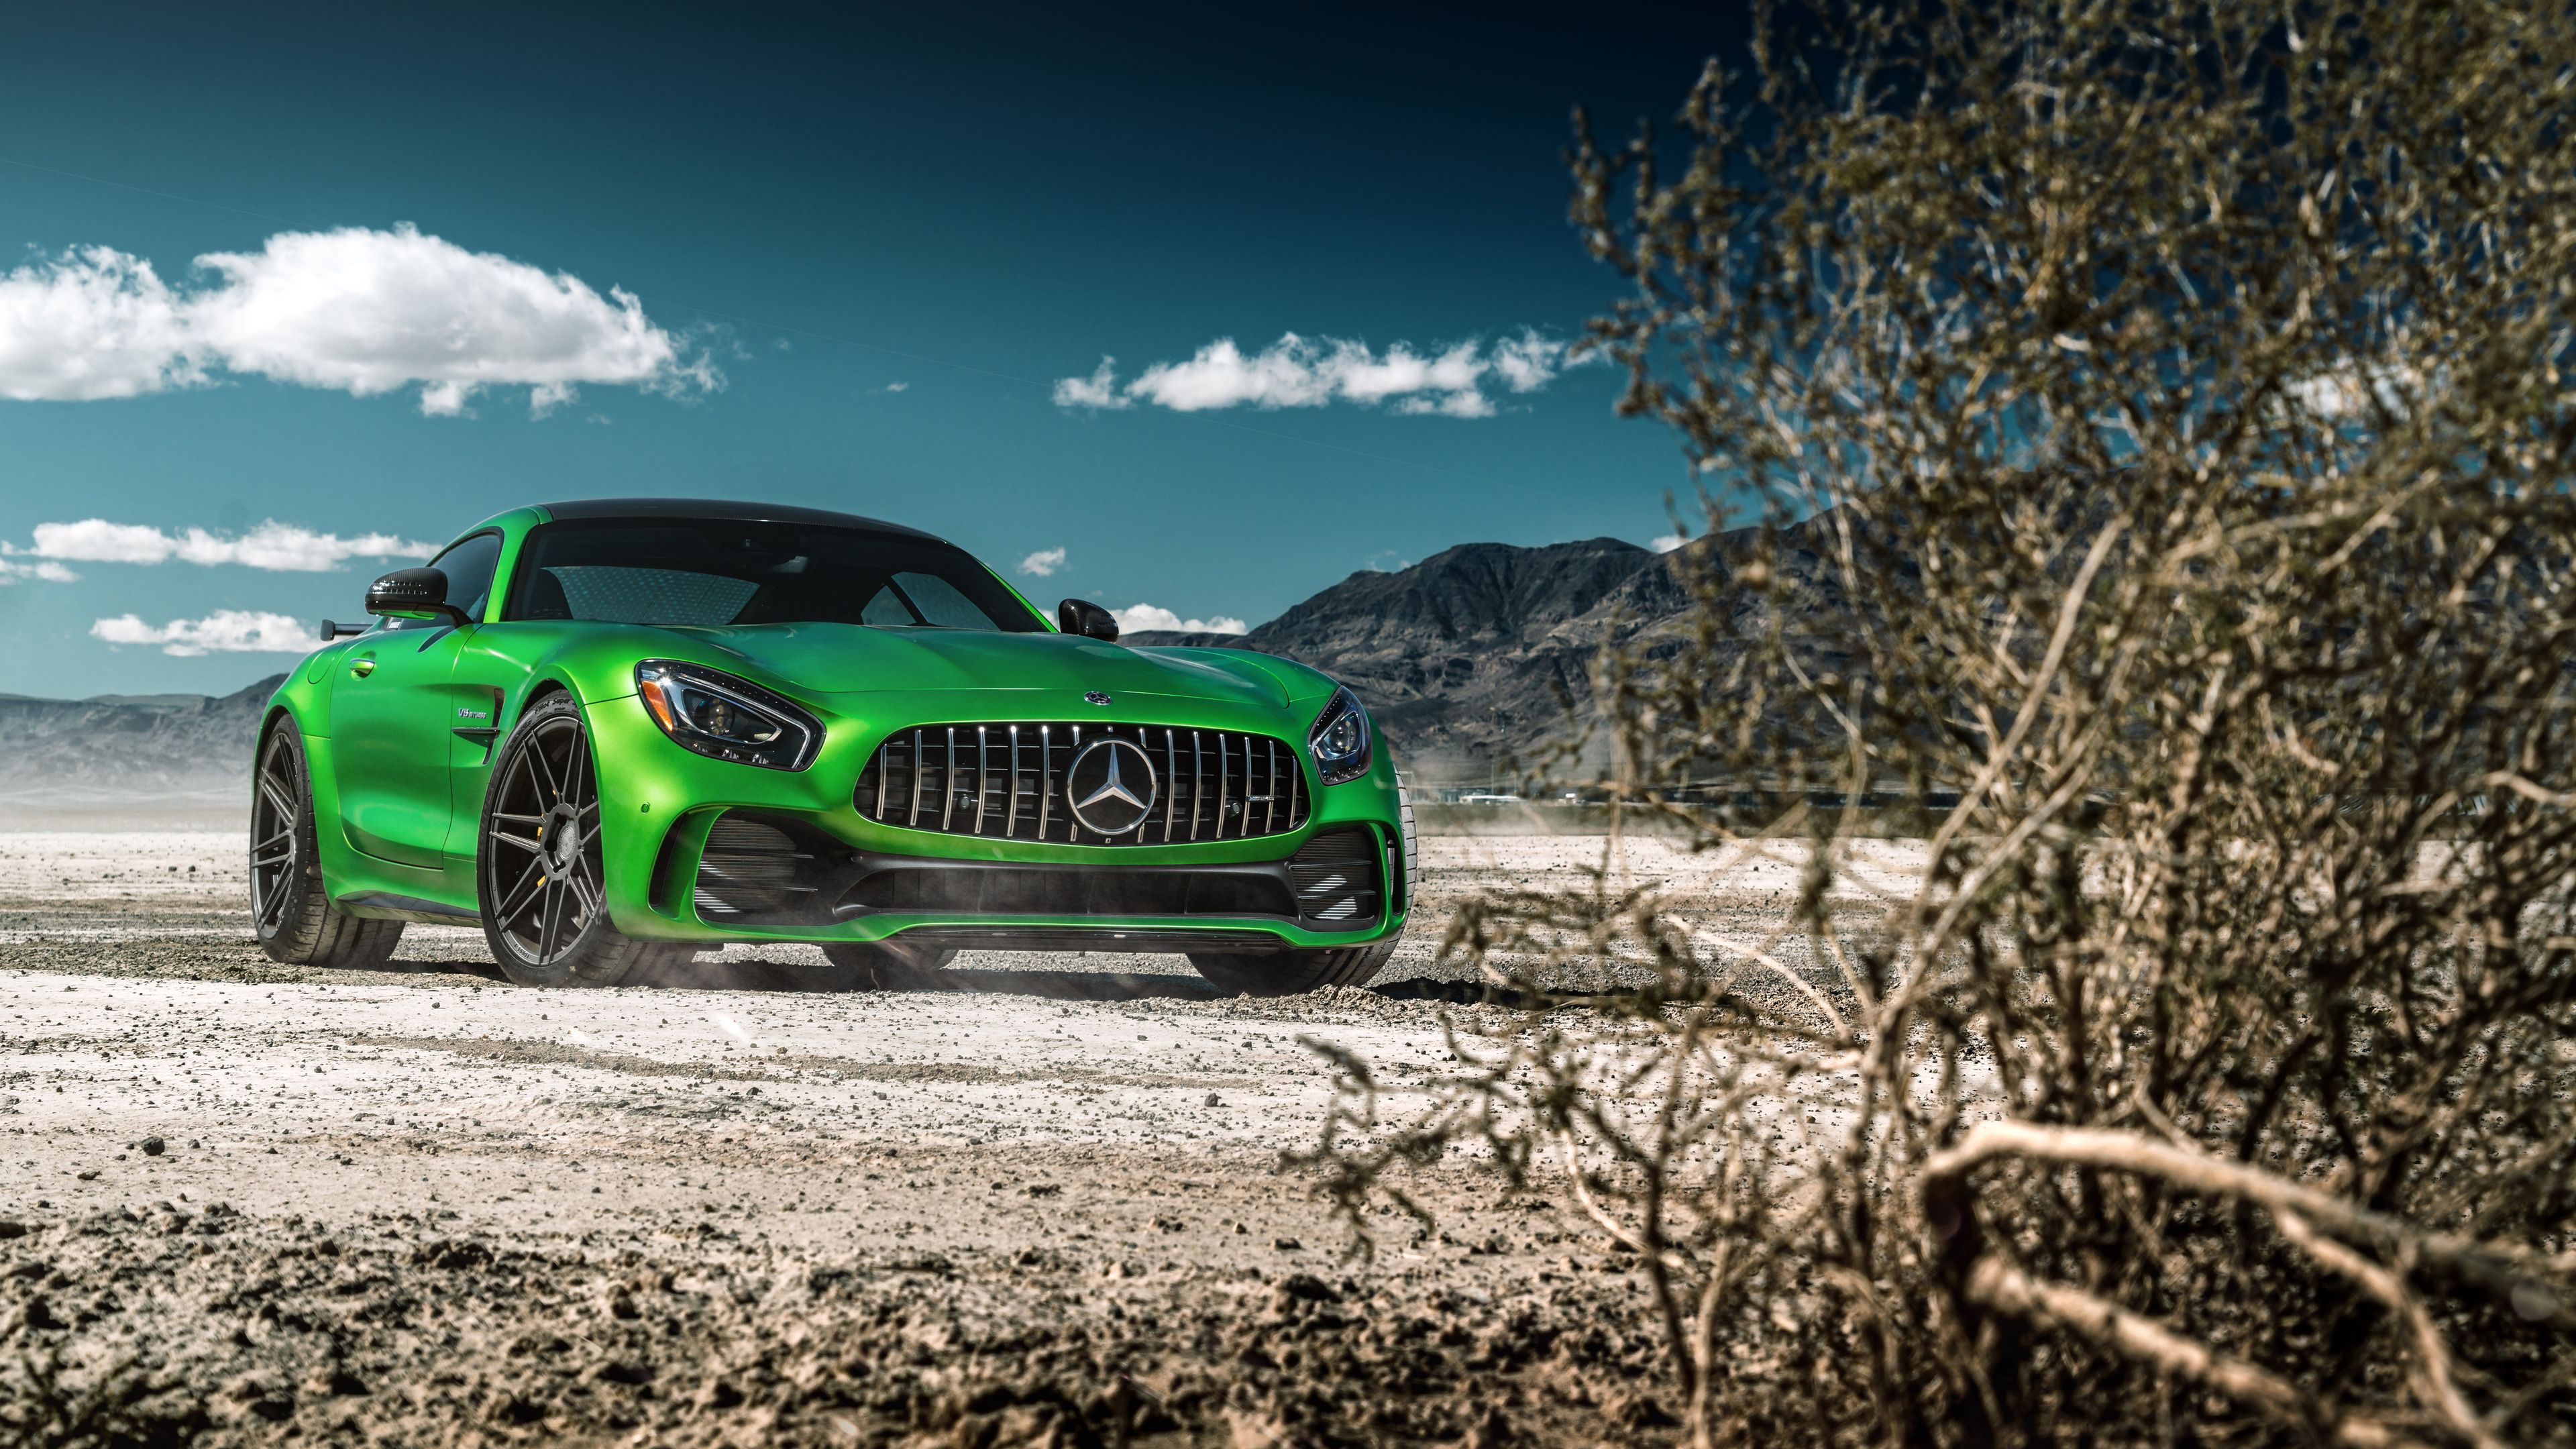 Wallpaper 4k Green Mercedes Benz Amg Gt 8k 2018 Cars Wallpapers